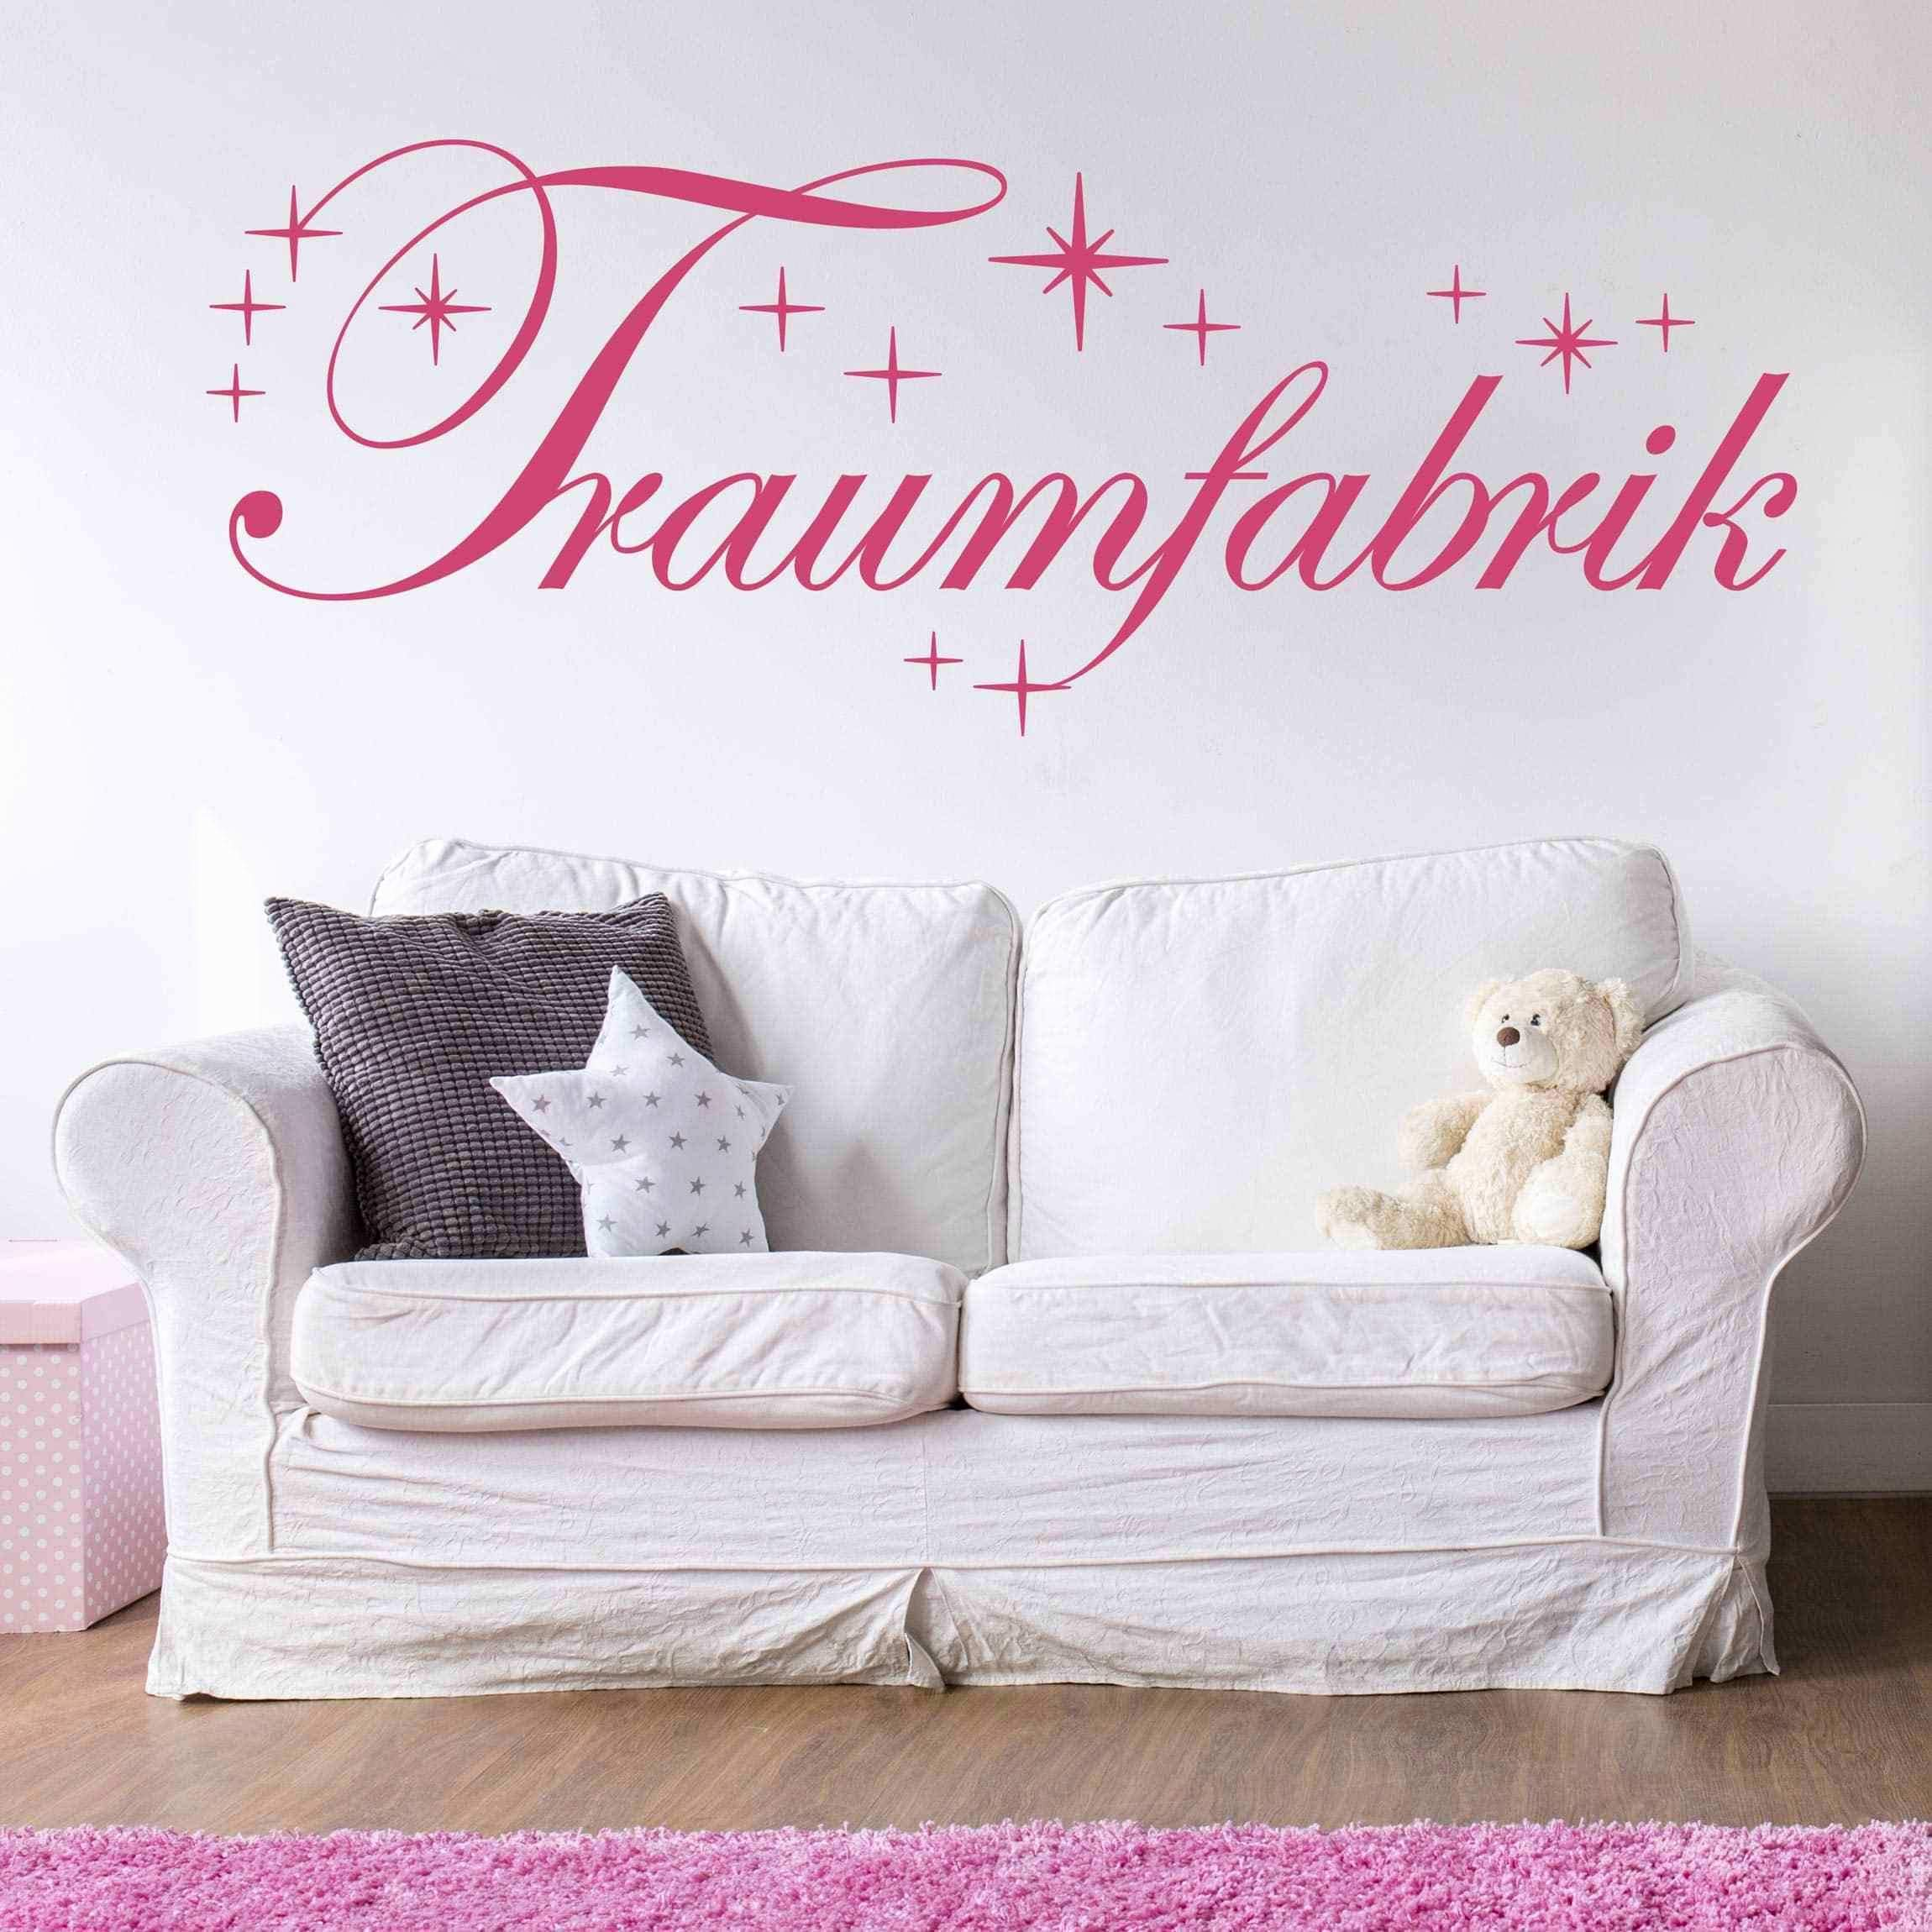 Full Size of Wandtattoos Sprüche Selber Machen Wandtattoos Sprüche Und Zitate Wandtattoos Sprüche Esszimmer Wandtattoos Sprüche Zitate Schlafzimmer Küche Wandtattoos Sprüche